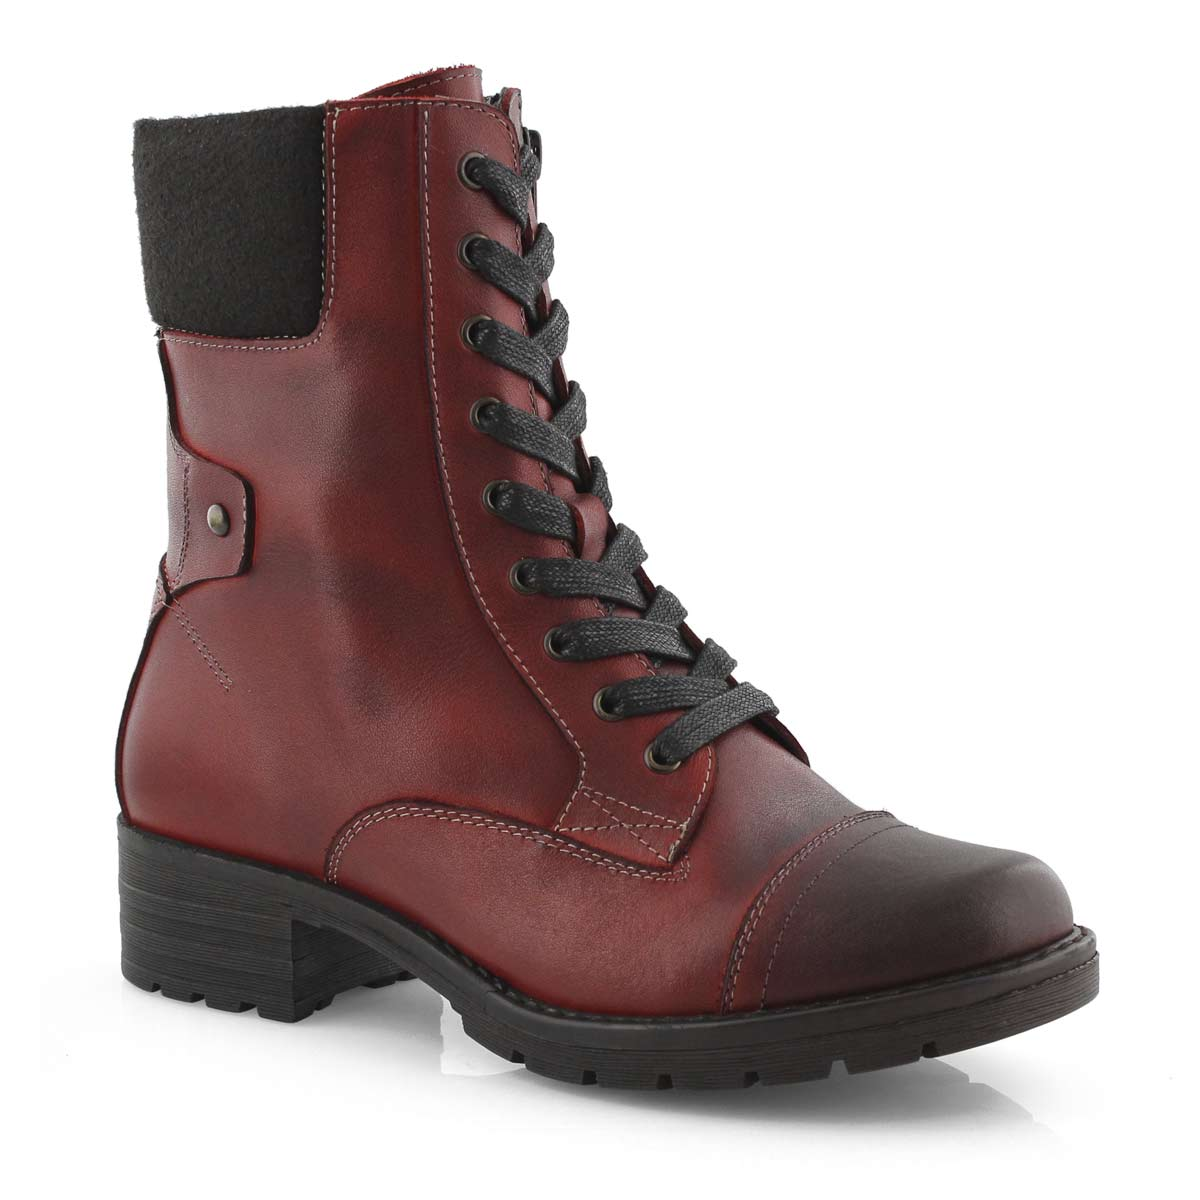 Red Combat Boots For Women